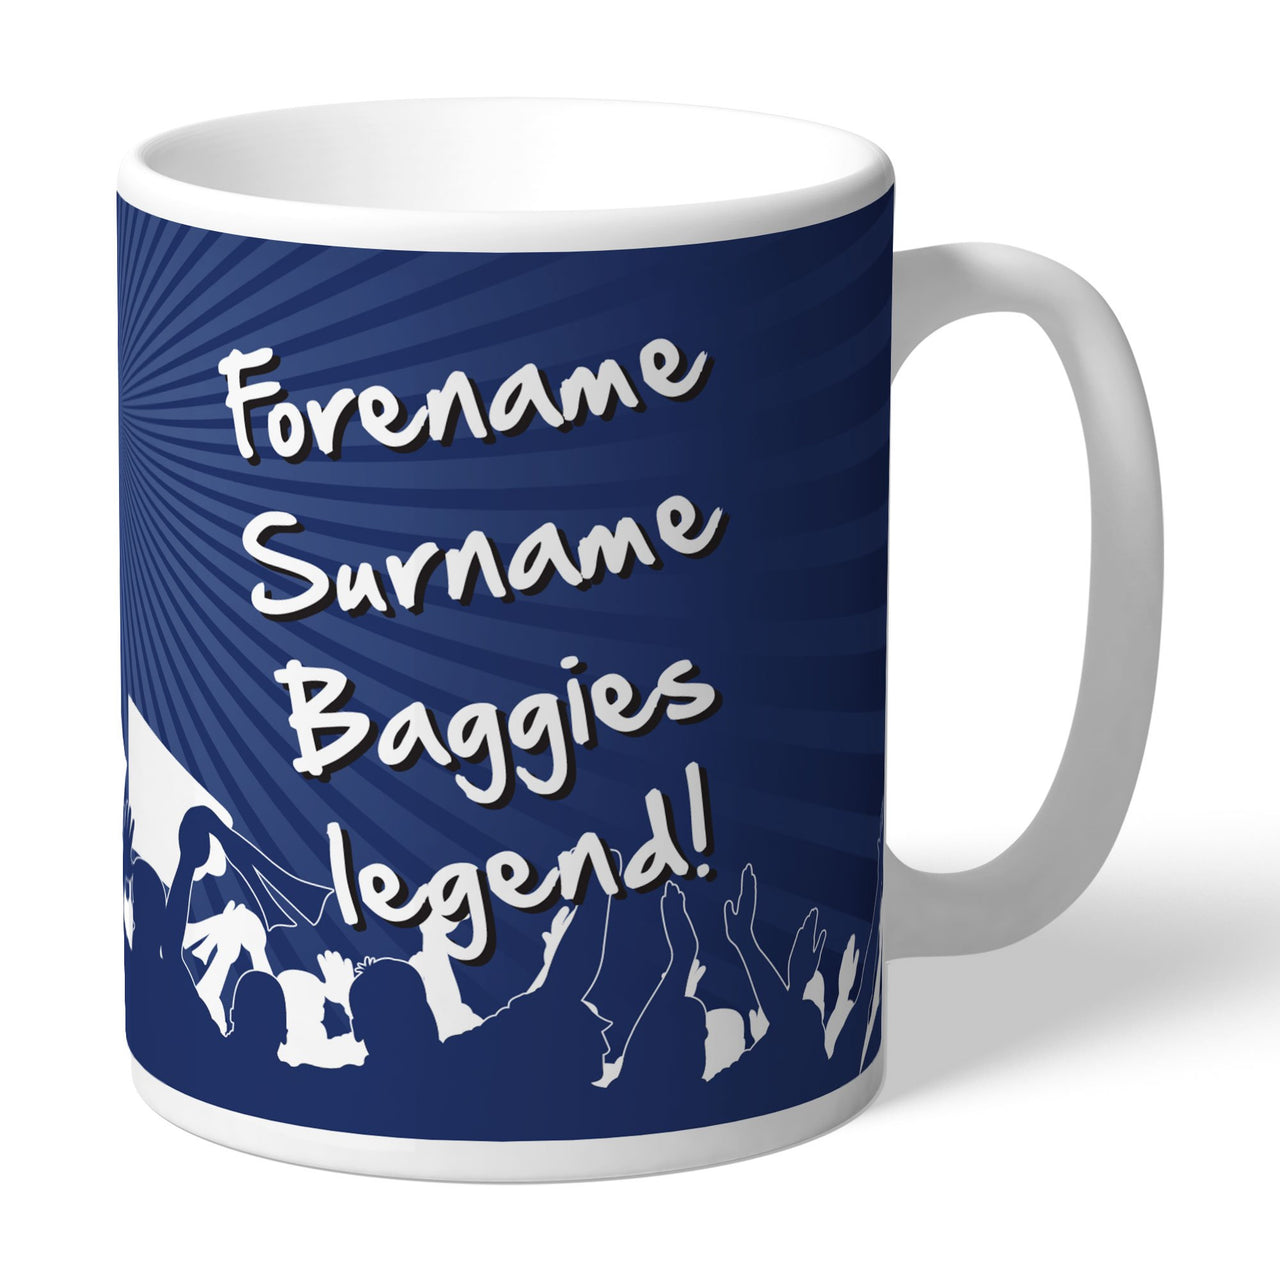 West Bromwich Albion FC Legend Mugs, Gifts